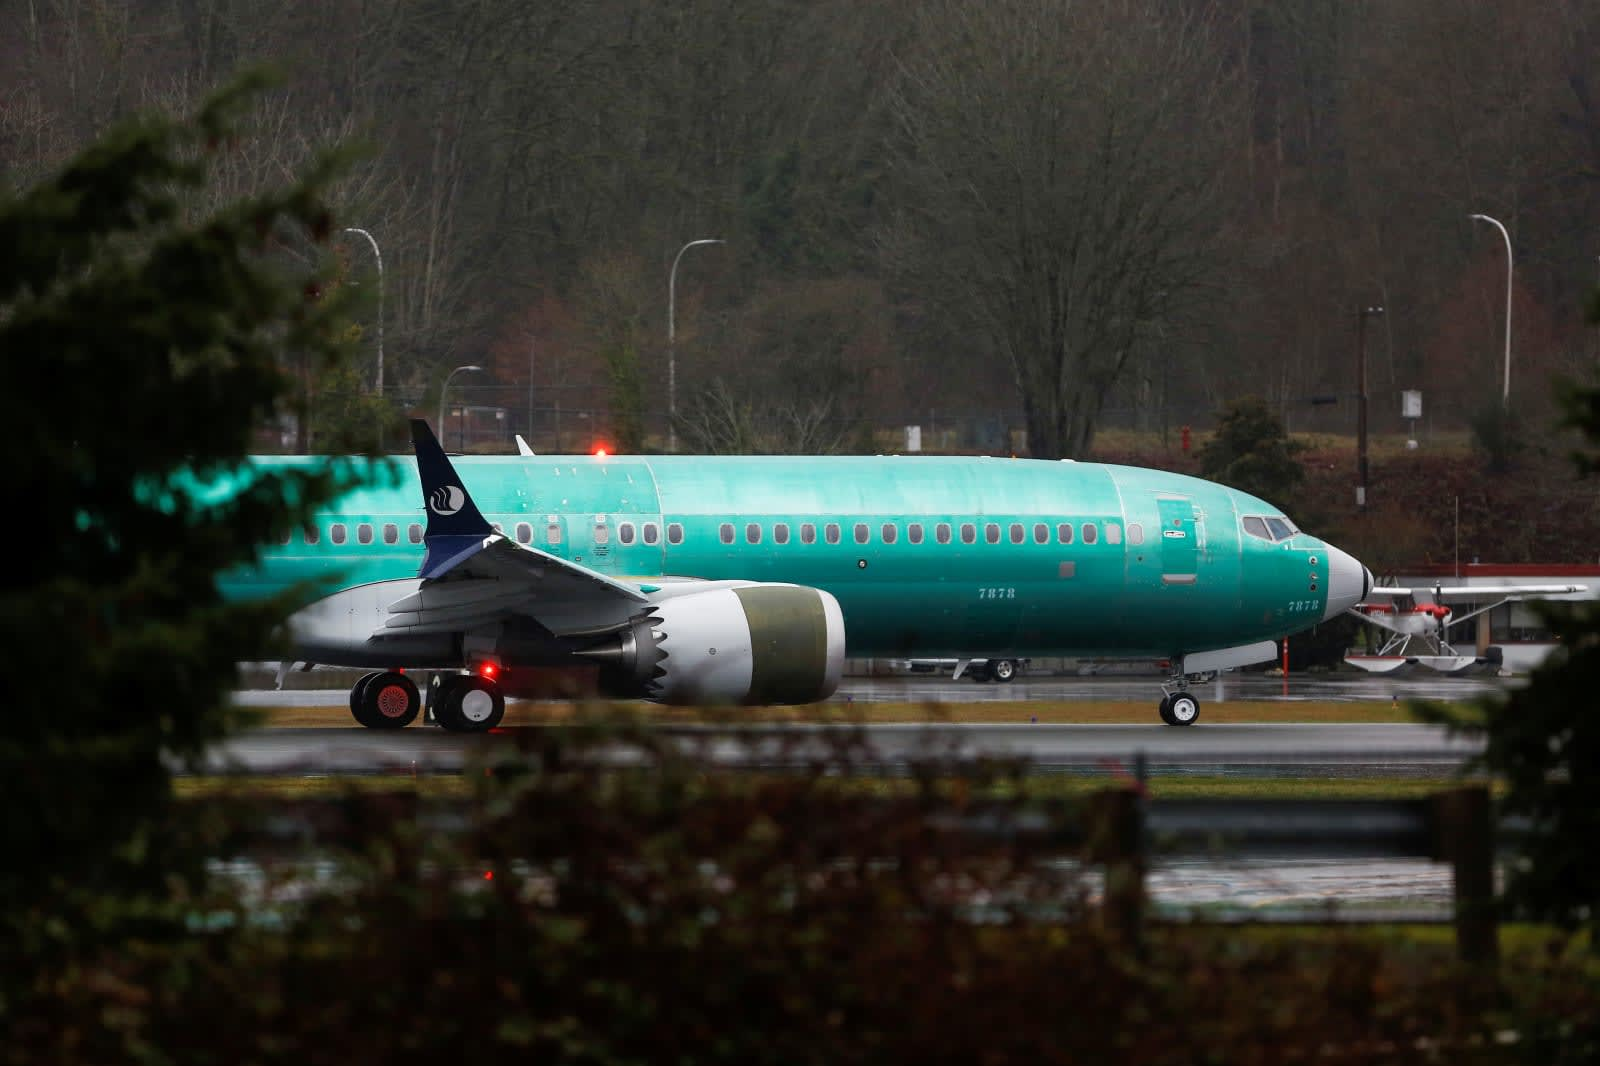 Boeing doesn't expect the 737 Max to resume flying before mid-2020